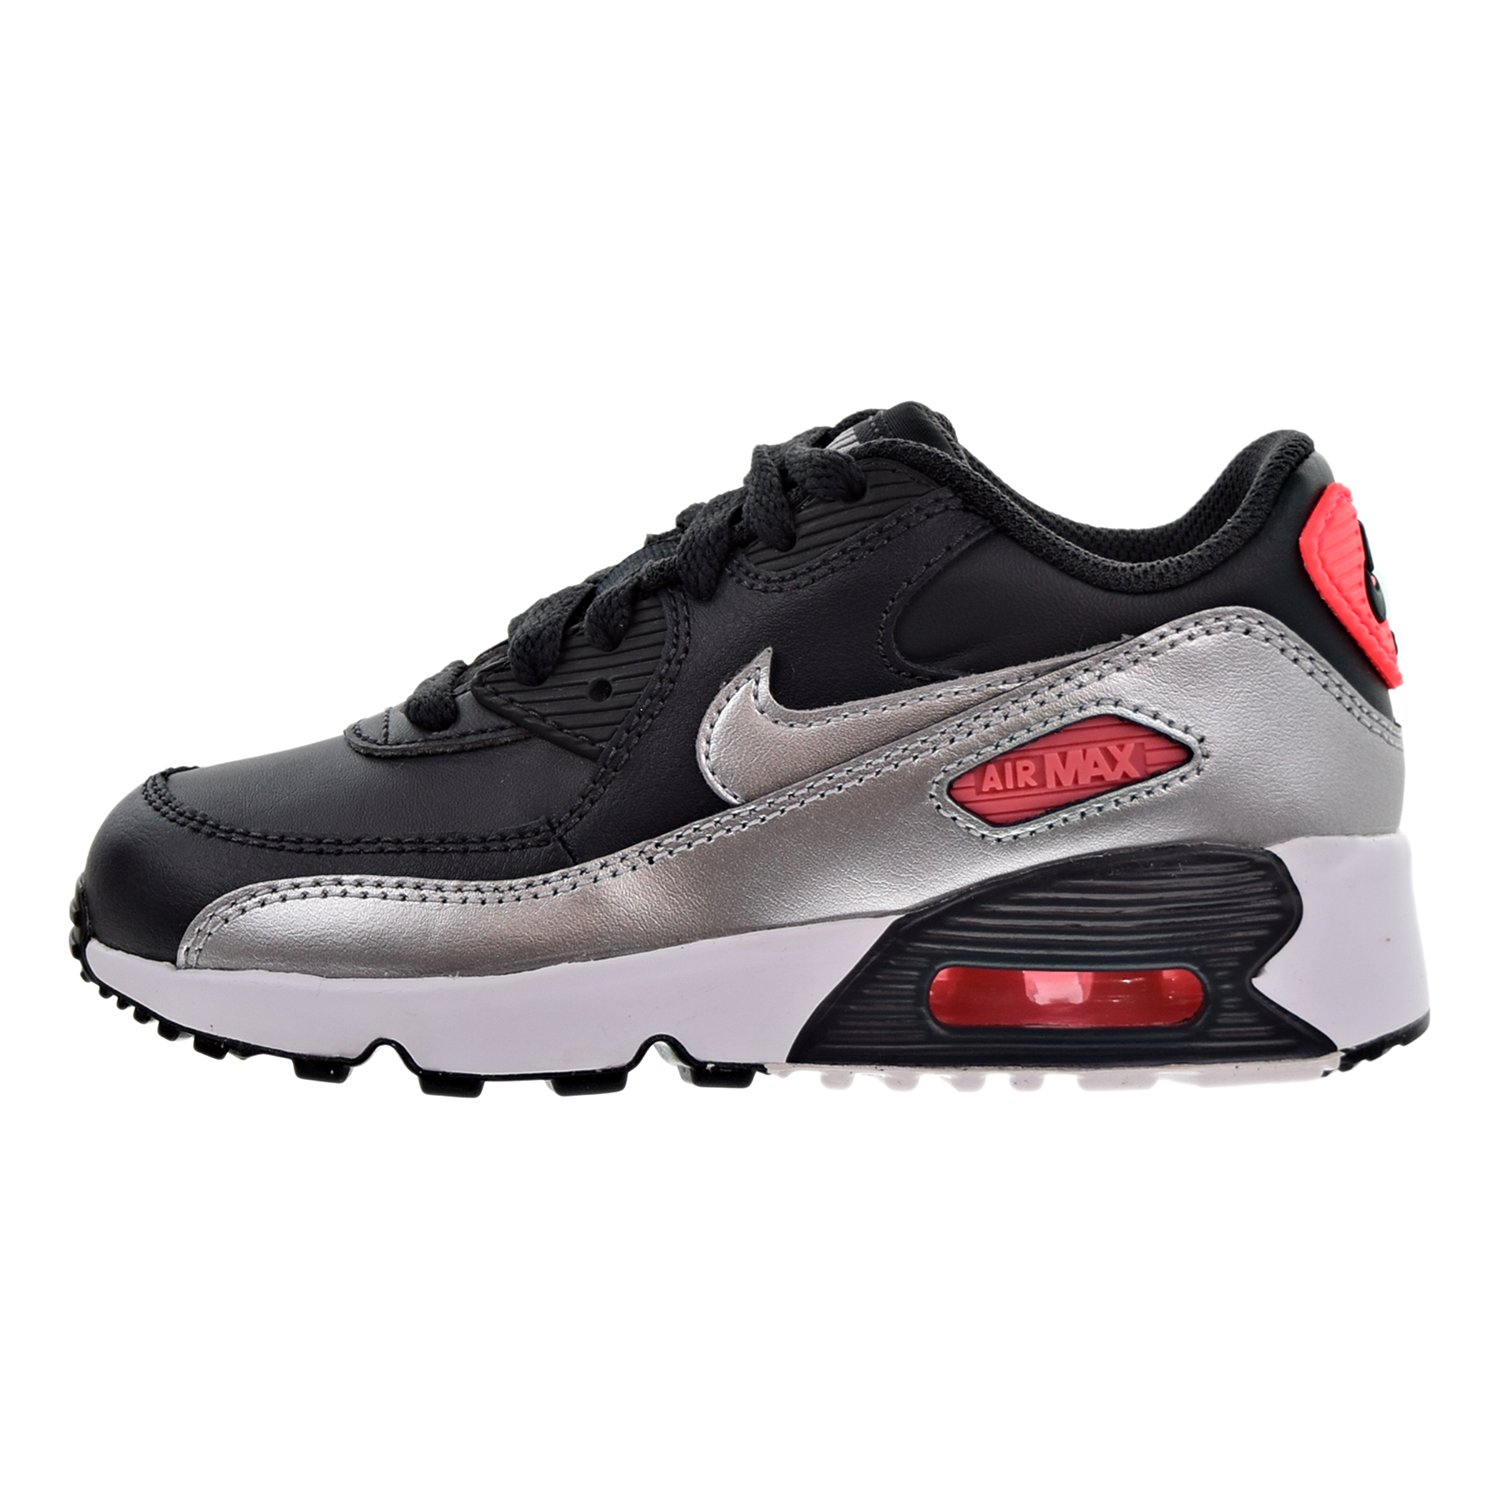 timeless design f65d3 db508 Amazon.com   Nike Kids Air Max 90 LTR Shoe Anthracite Metallic Silver-Hot  Punch 11.5C   Basketball